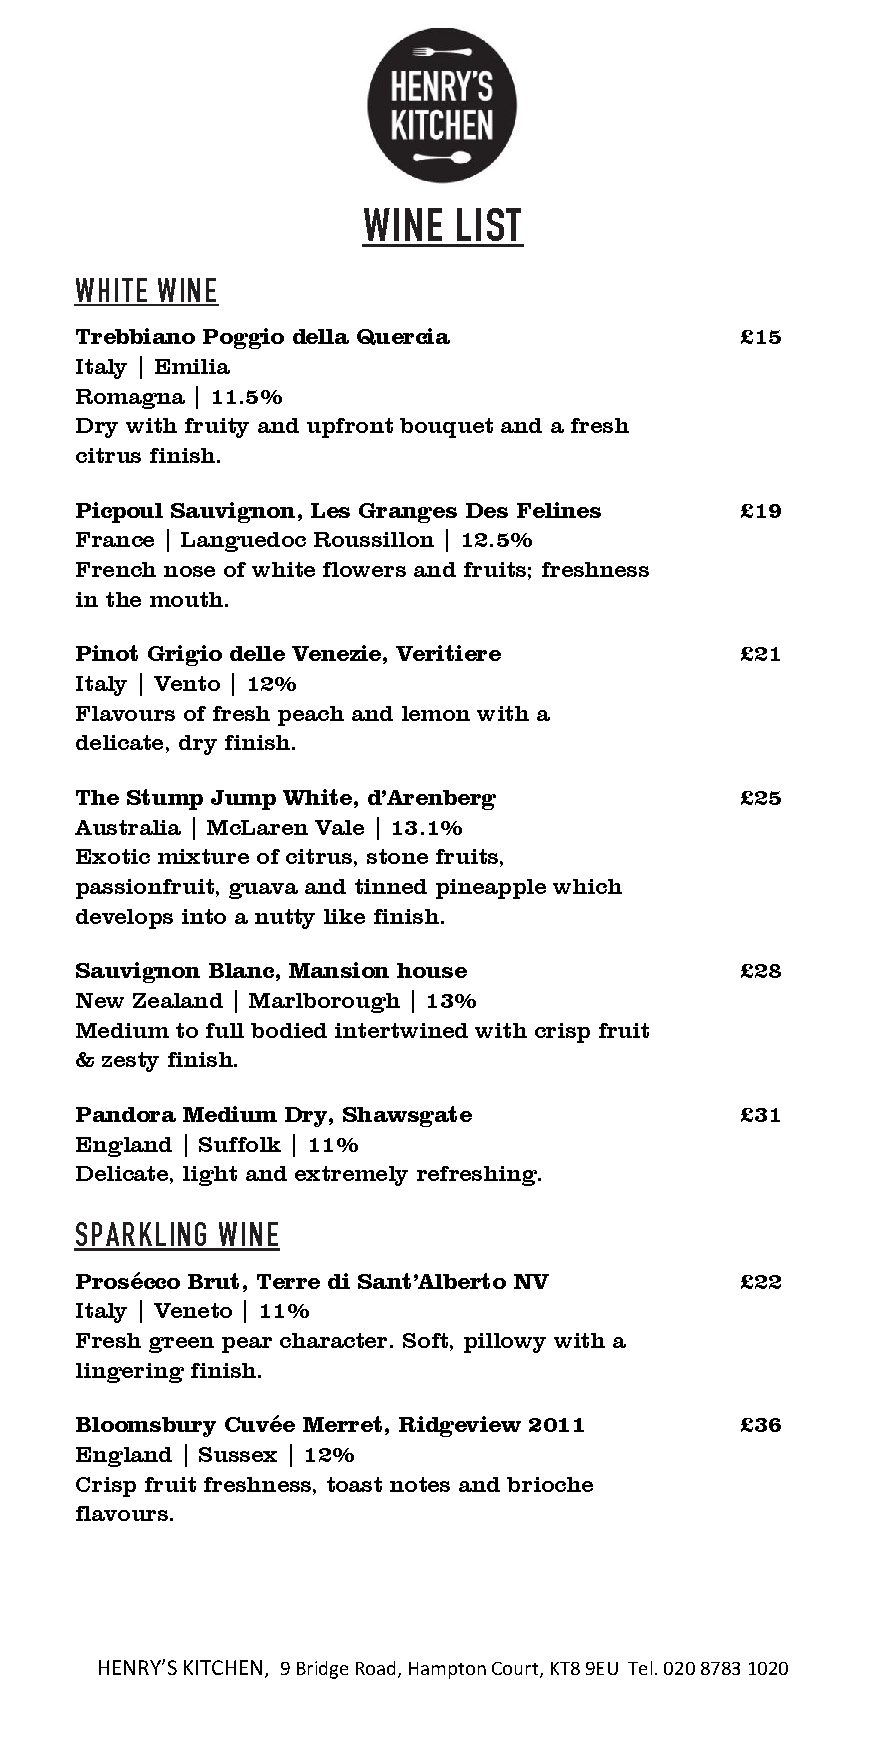 Henrys-Kitchen-Wine-List-August-2016b_Page_1